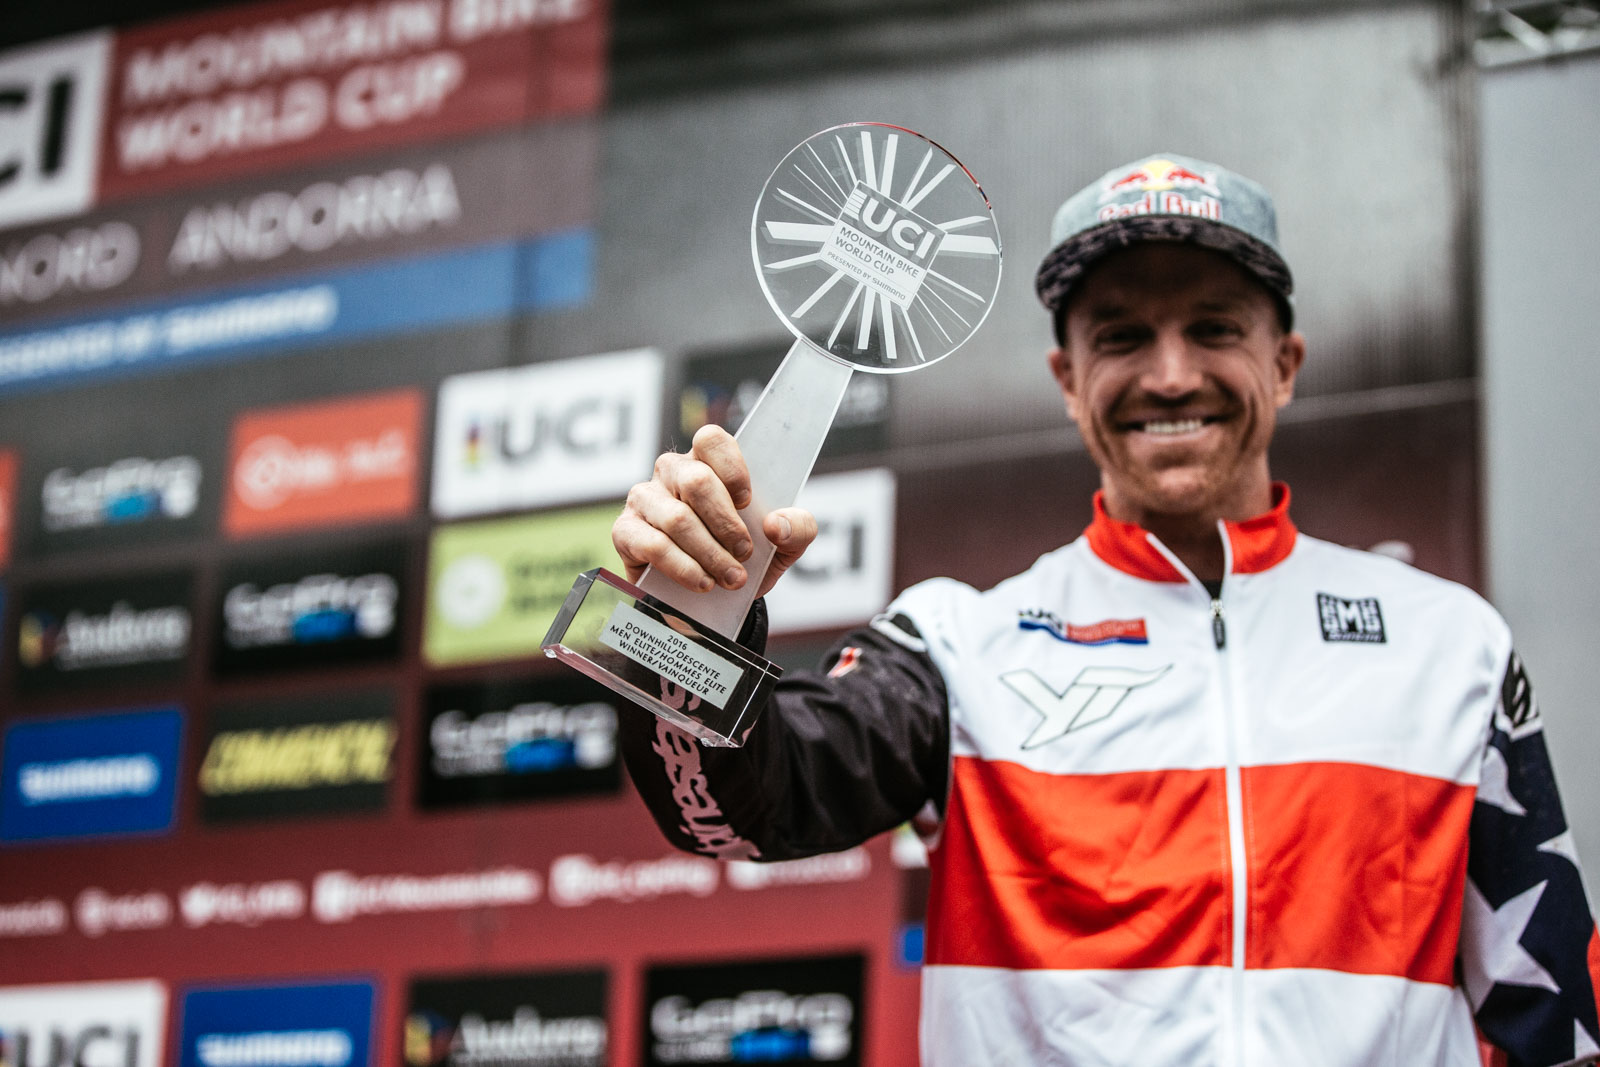 Aaron Gwin UCI World DH Series Champion 2016